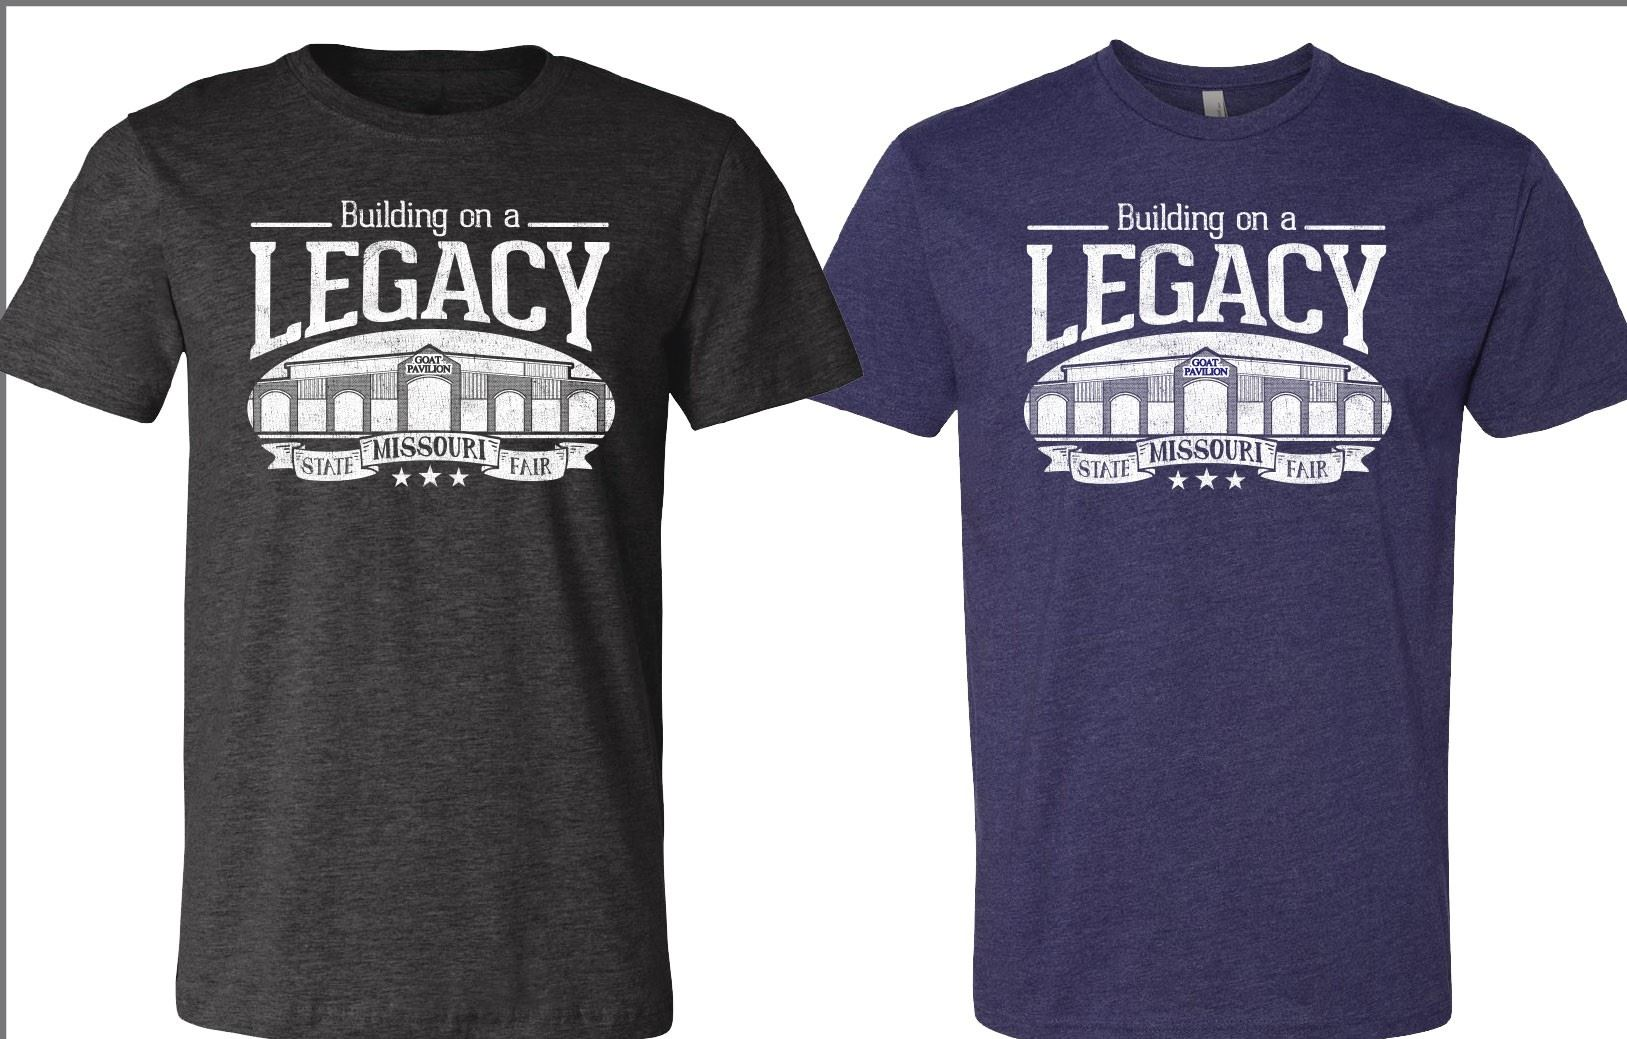 Building on a Legacy